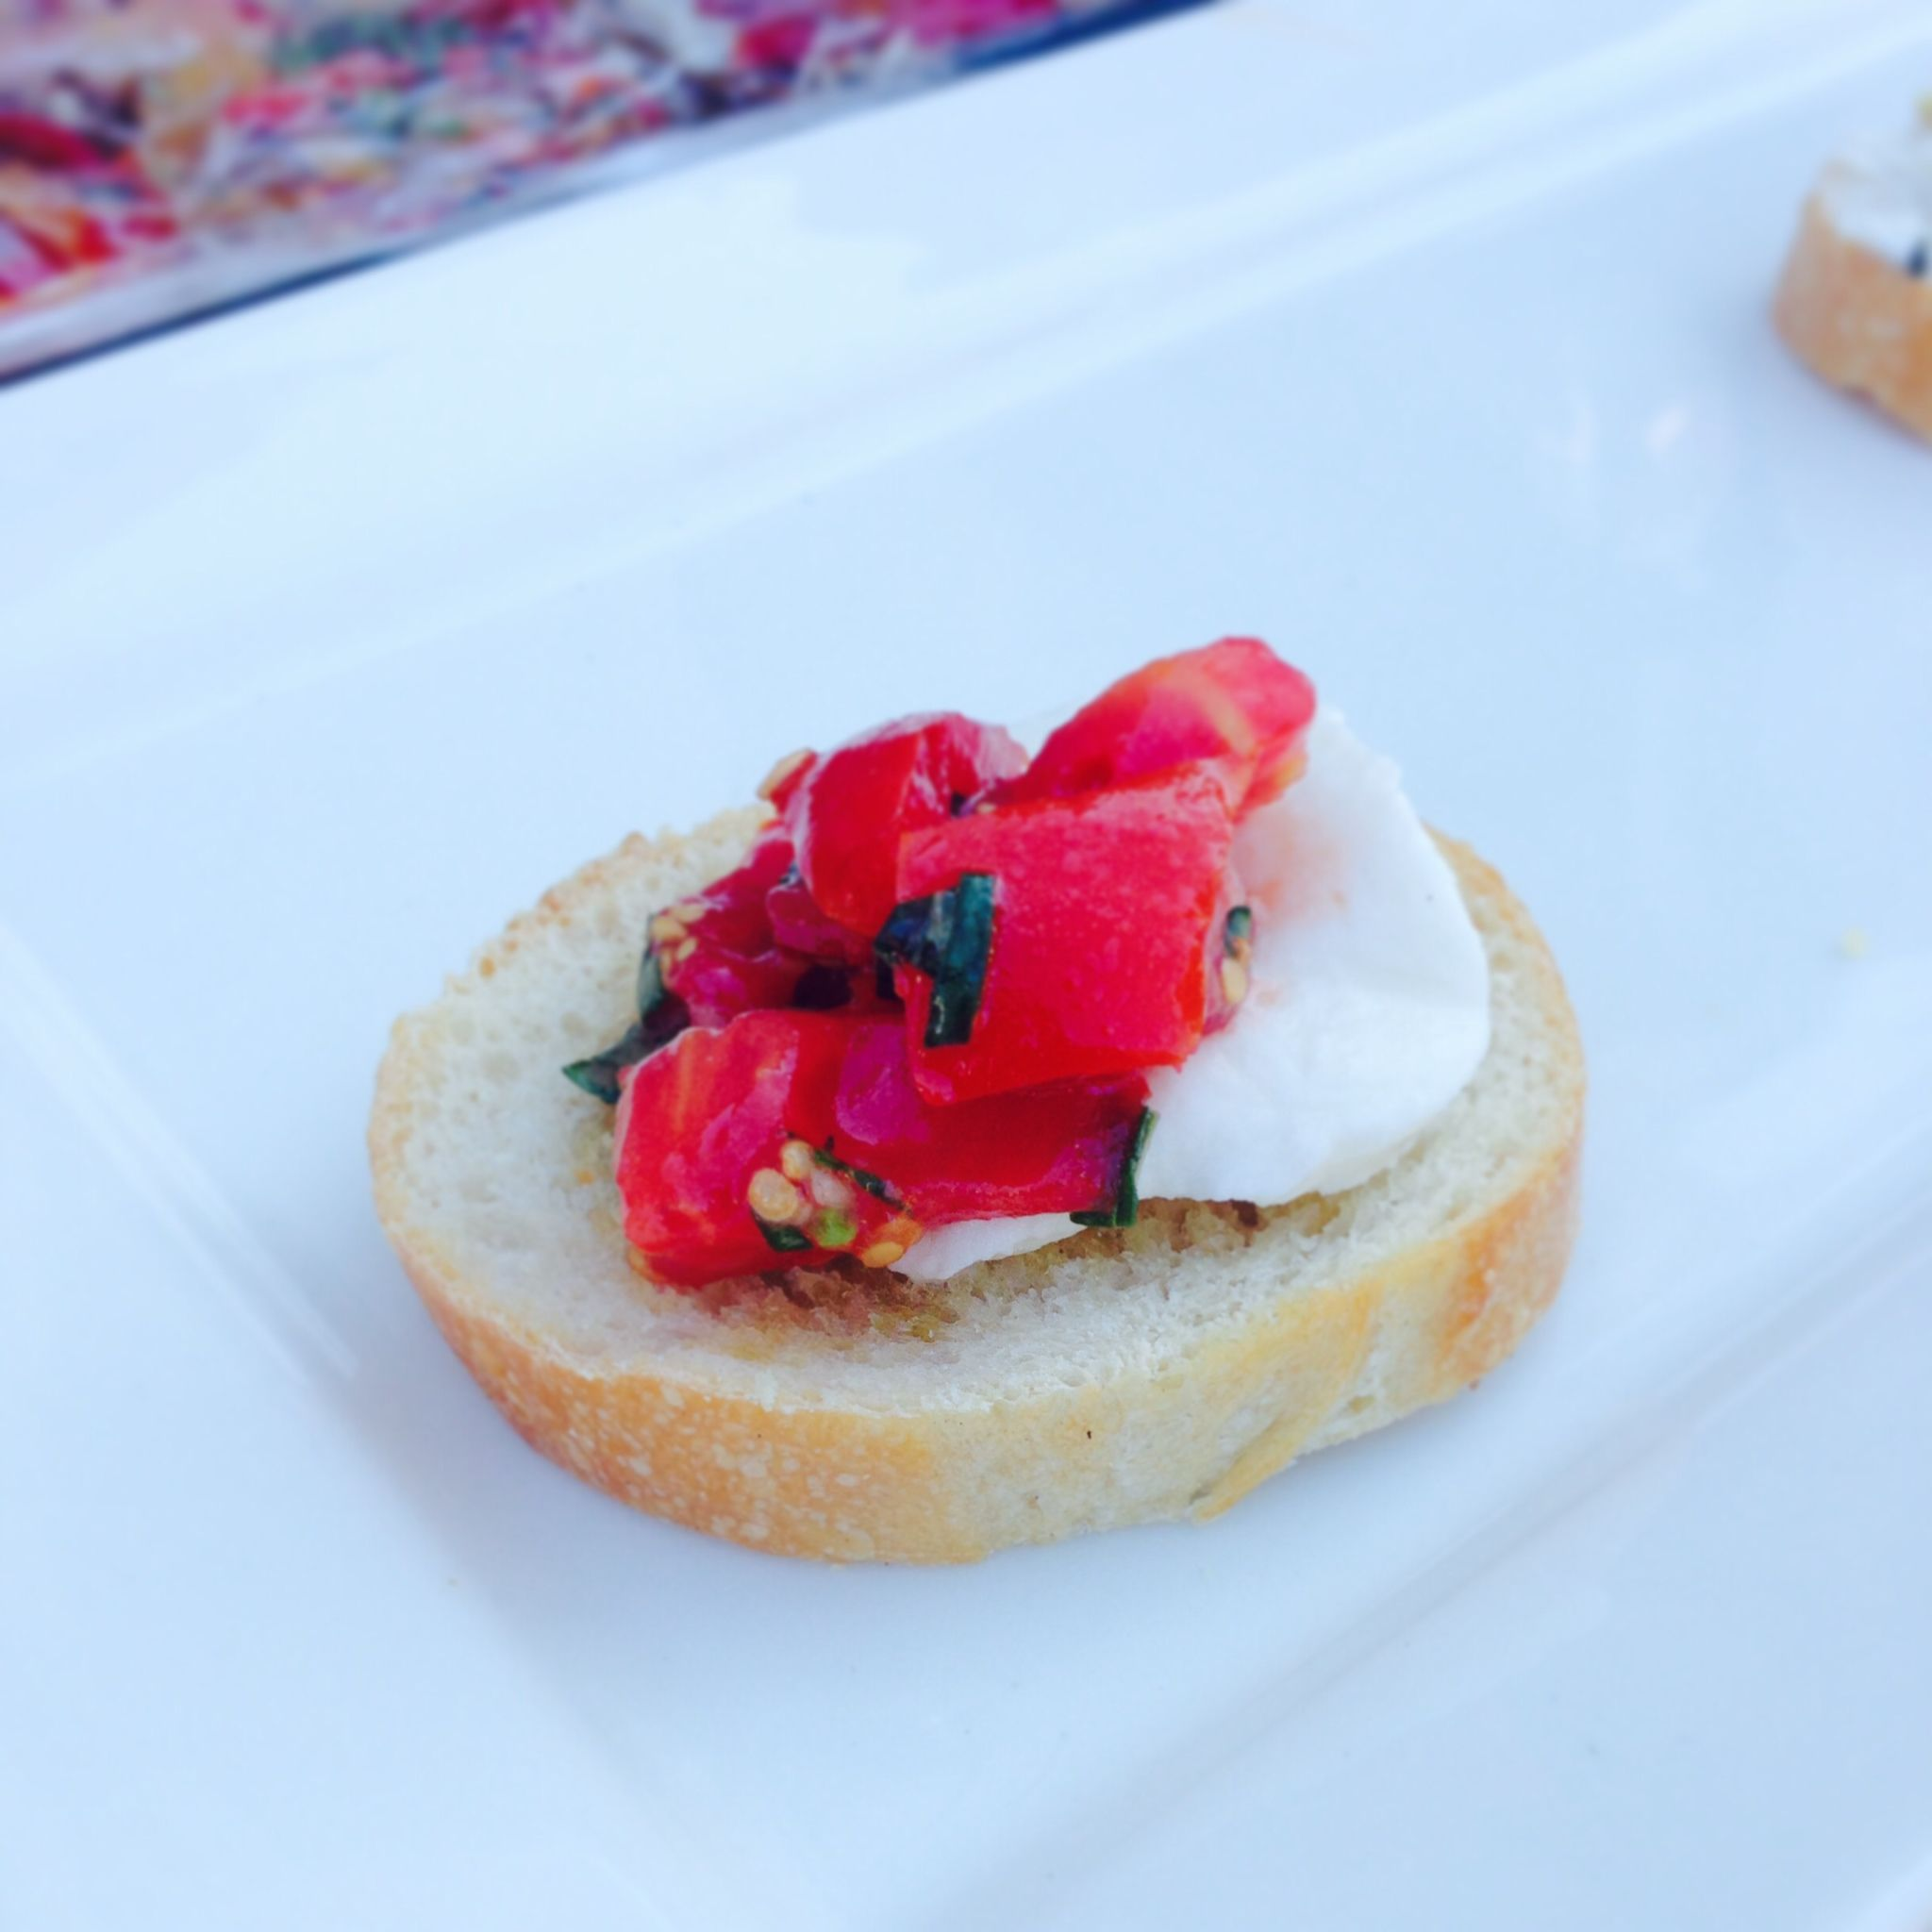 Our classic Bruschetta with tomatoes, garlic, basil & fresh mozzarella. Farm to Table Catering.